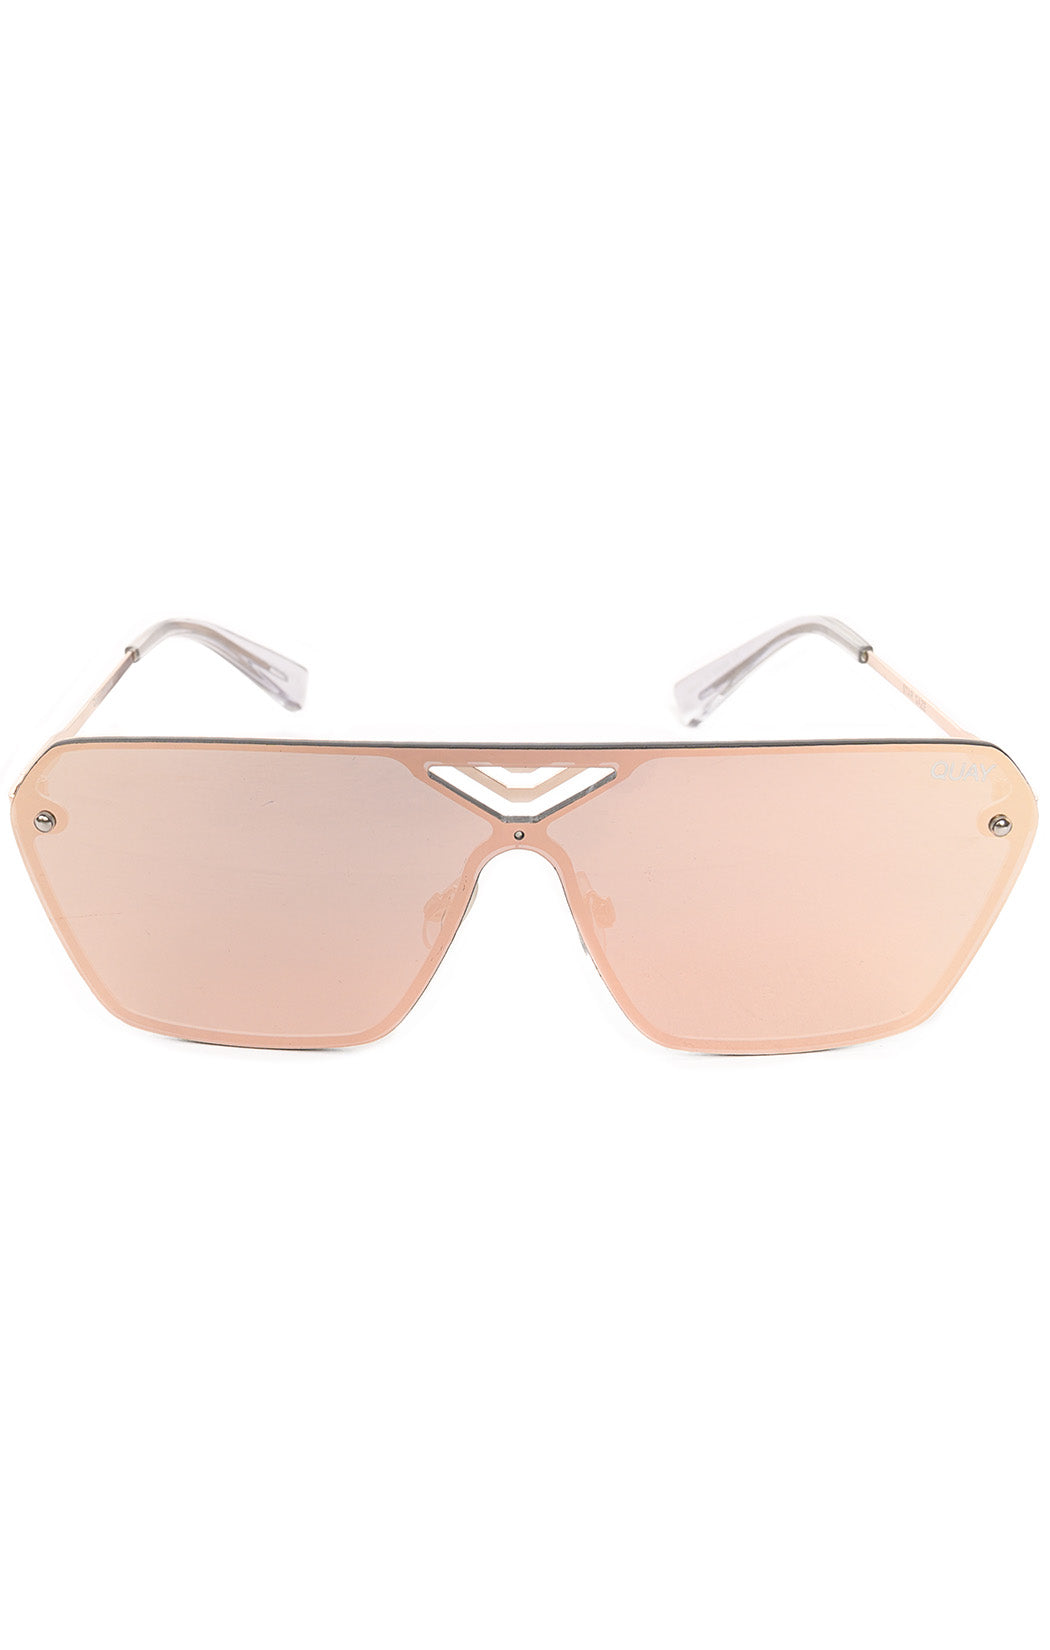 "Front view of QUAY Sunglasses  Size: 6"" W x 2"" H"